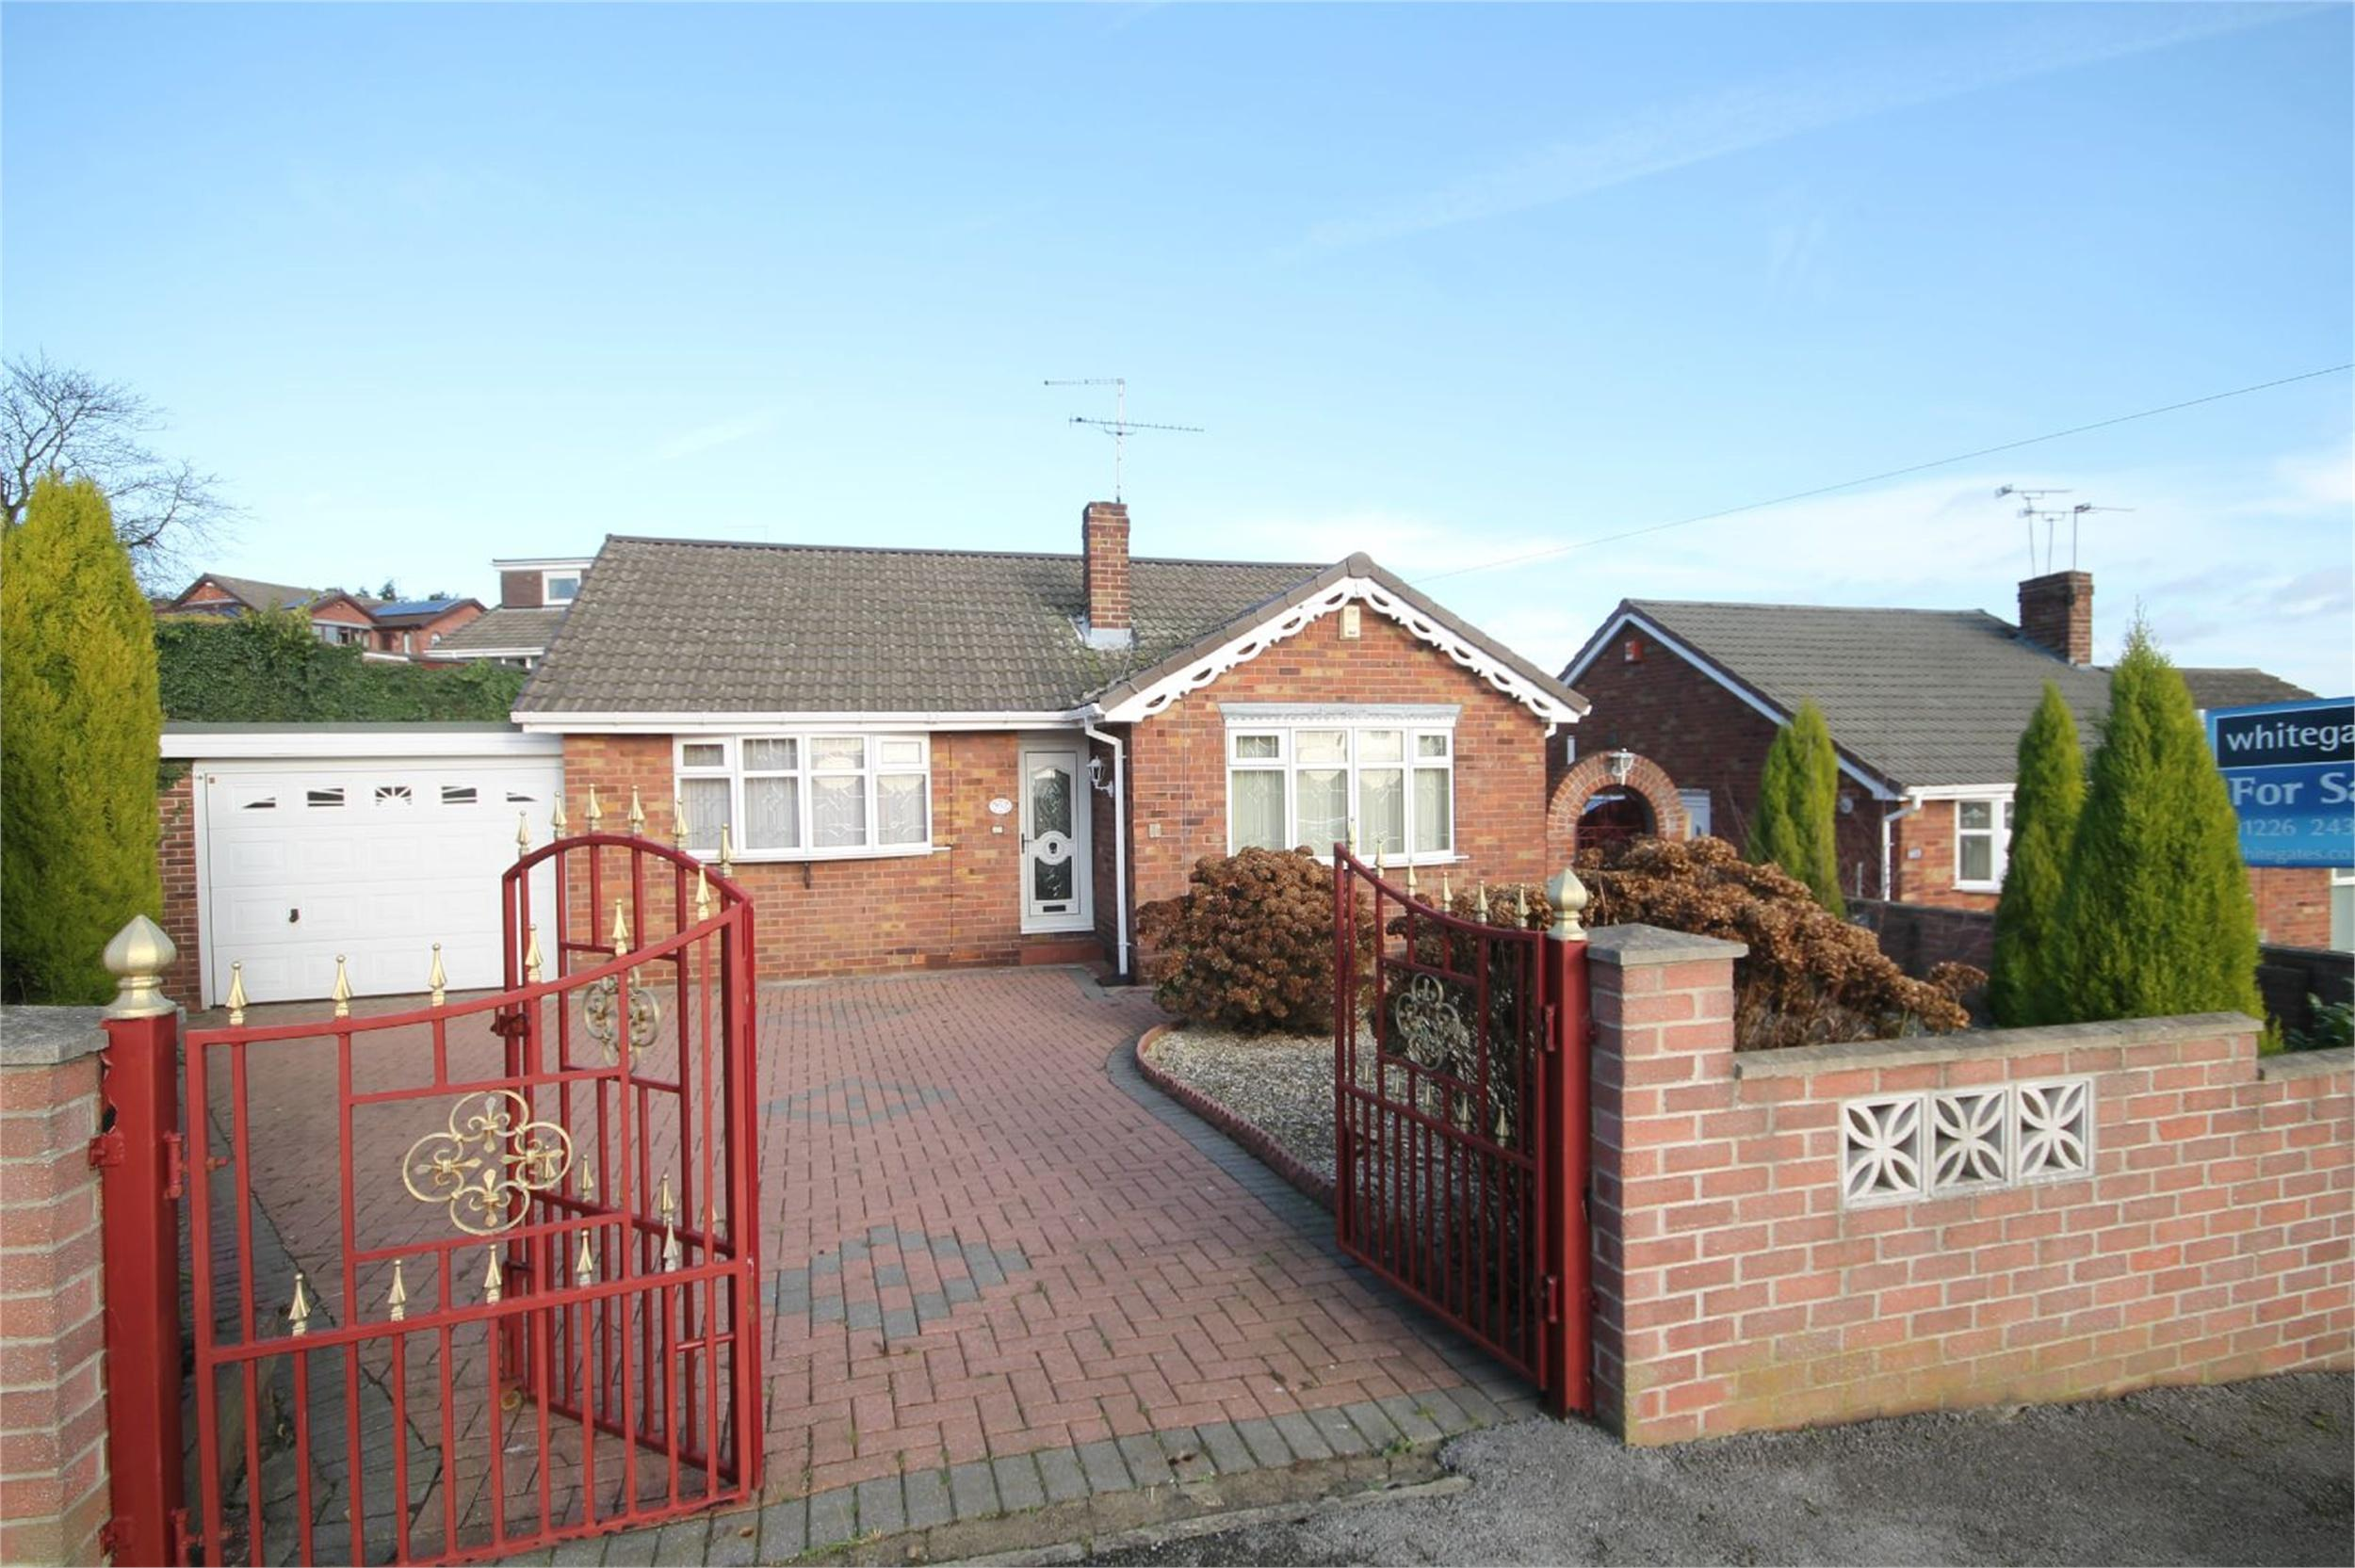 Whitegates Barnsley 2 Bedroom Detached Bungalow For Sale